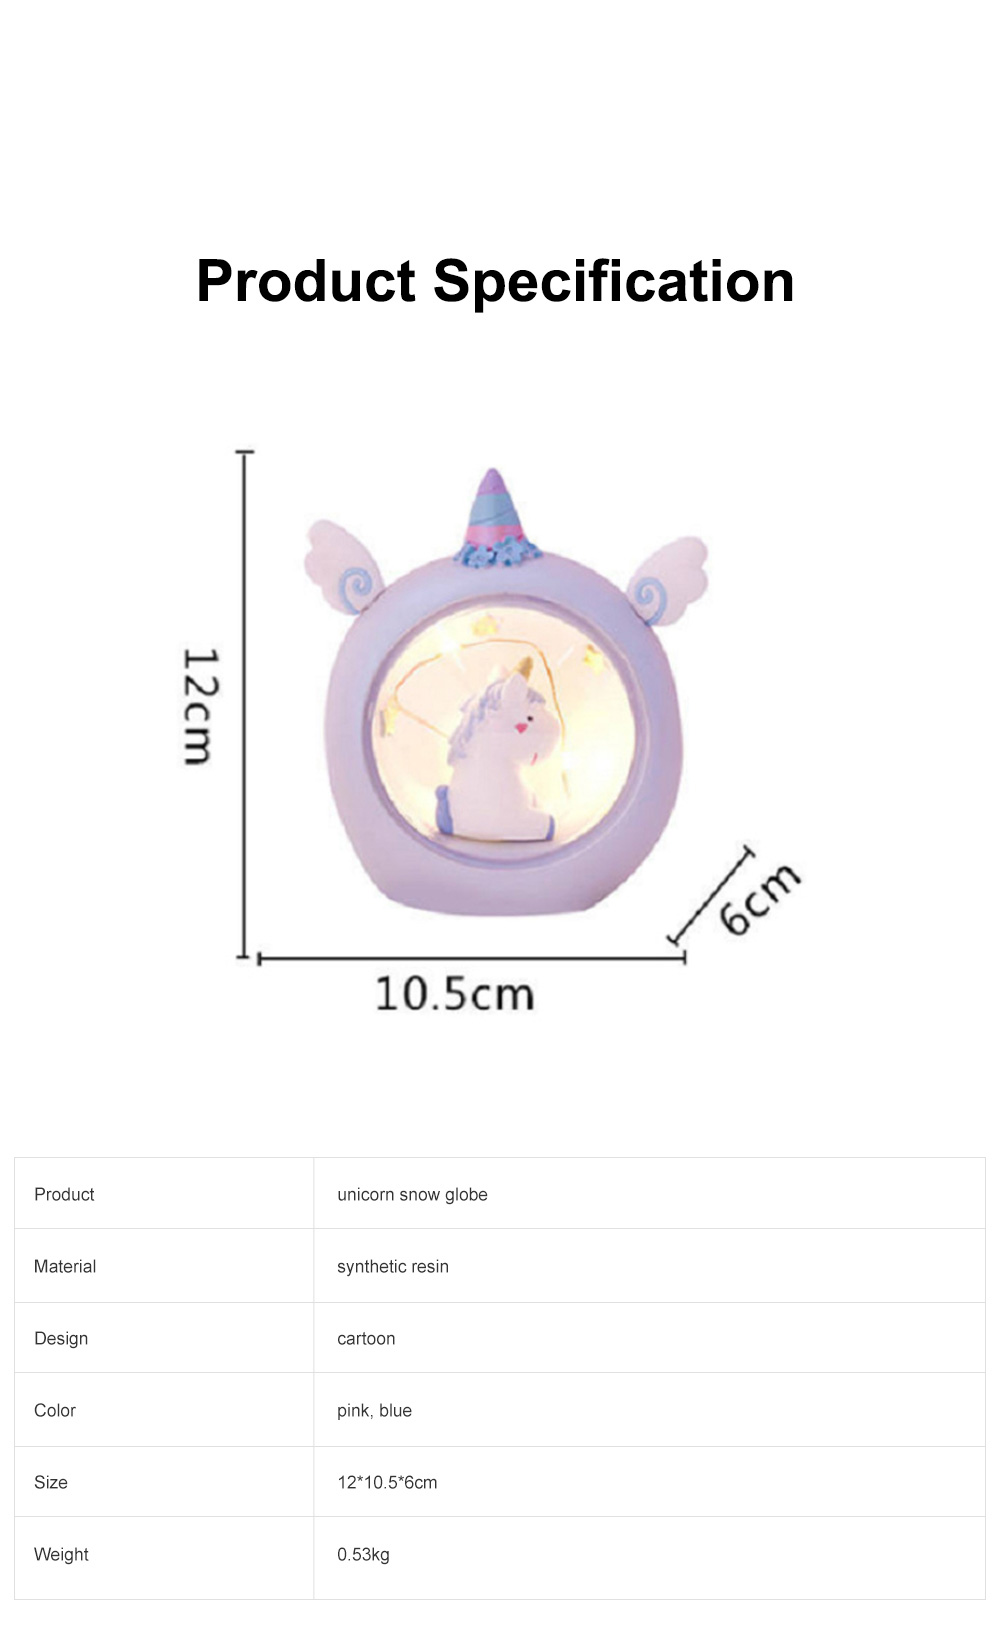 Fairy Unicorn Snow Globe Night Light for Kids Girls Granddaughters Babies Birthday Gift Pretty Creative LED Unicorn Crystal Ball Lamp 6